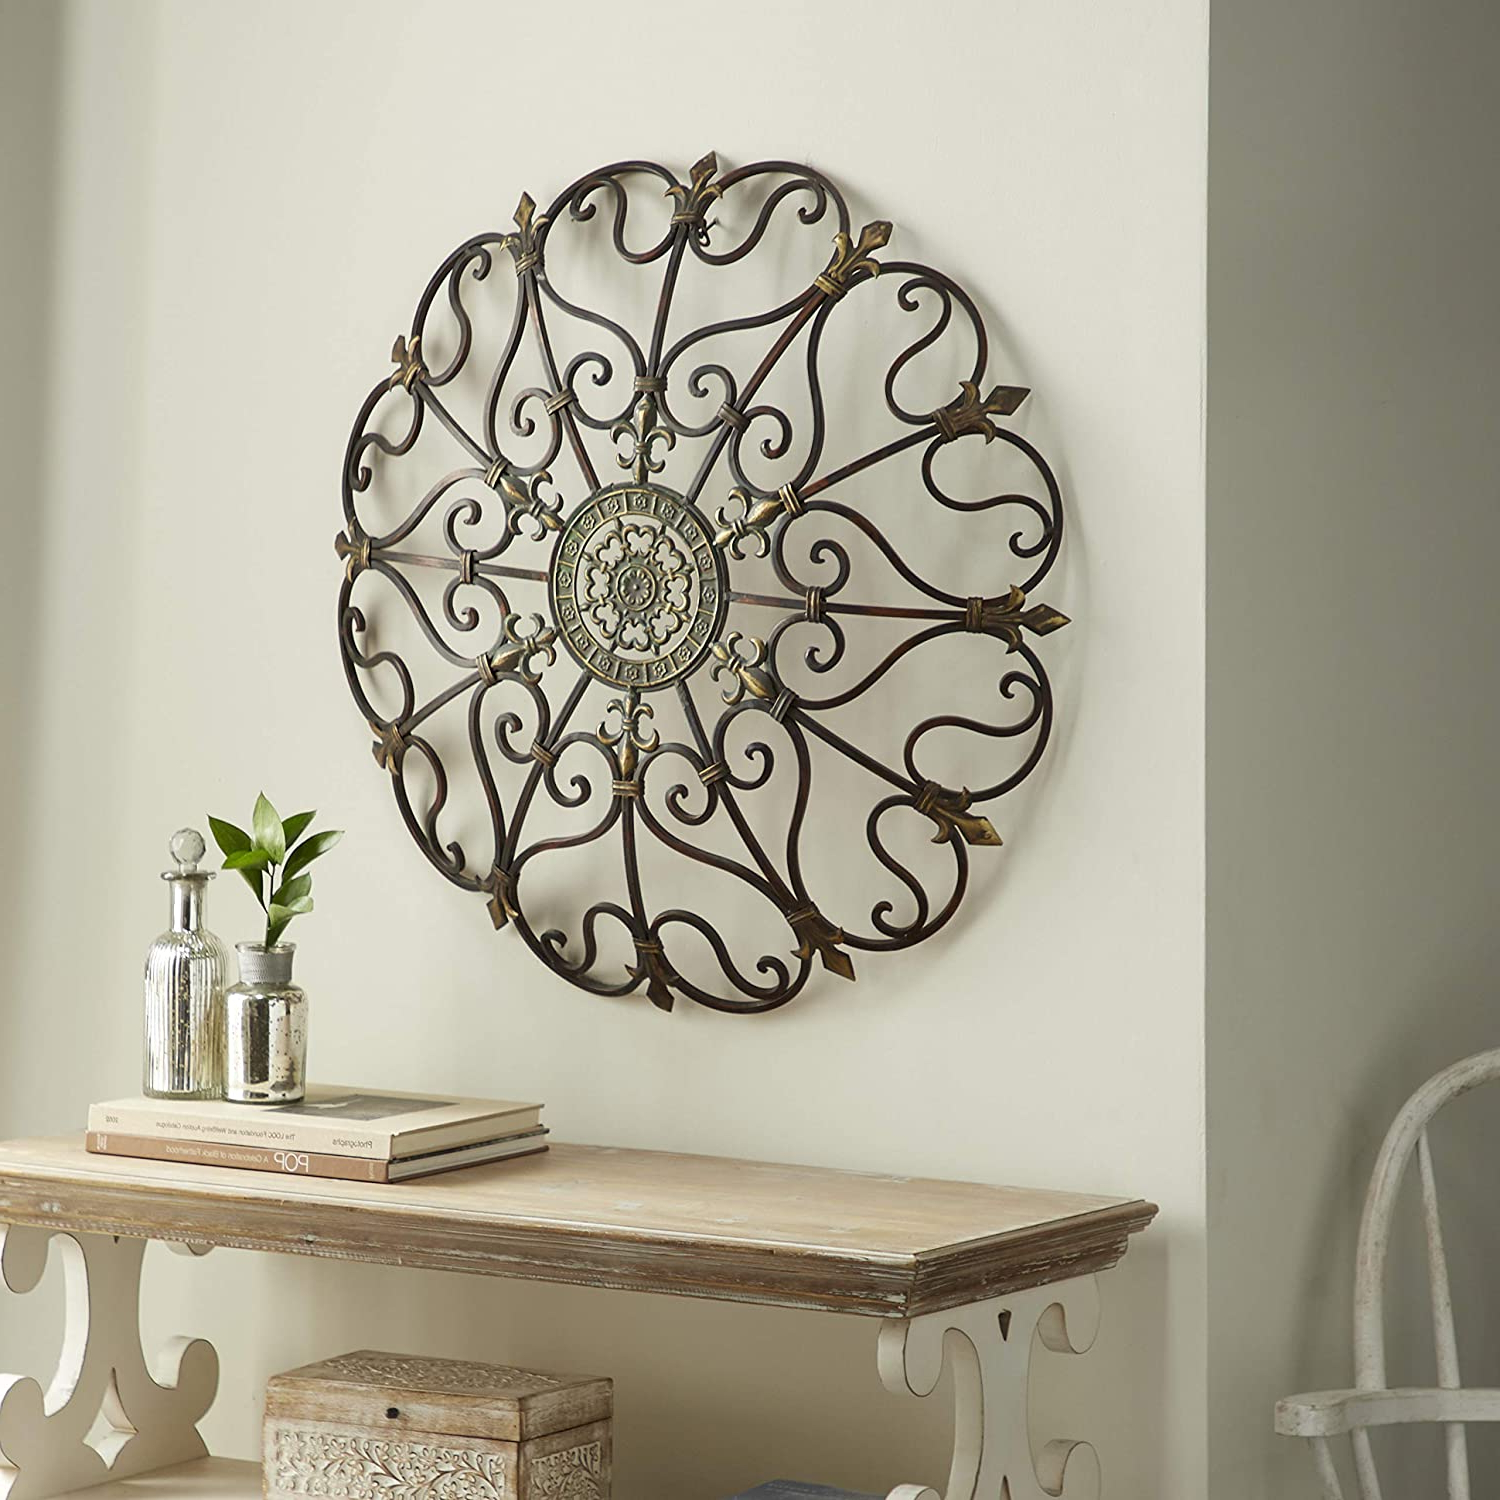 """Vintage Style Round Copper Metal Wall Decor W/ Fleur De Lis Accents, Copper And Gold Metal Wall Art, Fleur De Lis And Quatrefoil 3d Wall Art, 29"""" Throughout Latest Scroll Wall Décor By Fleur De Lis Living (View 7 of 20)"""